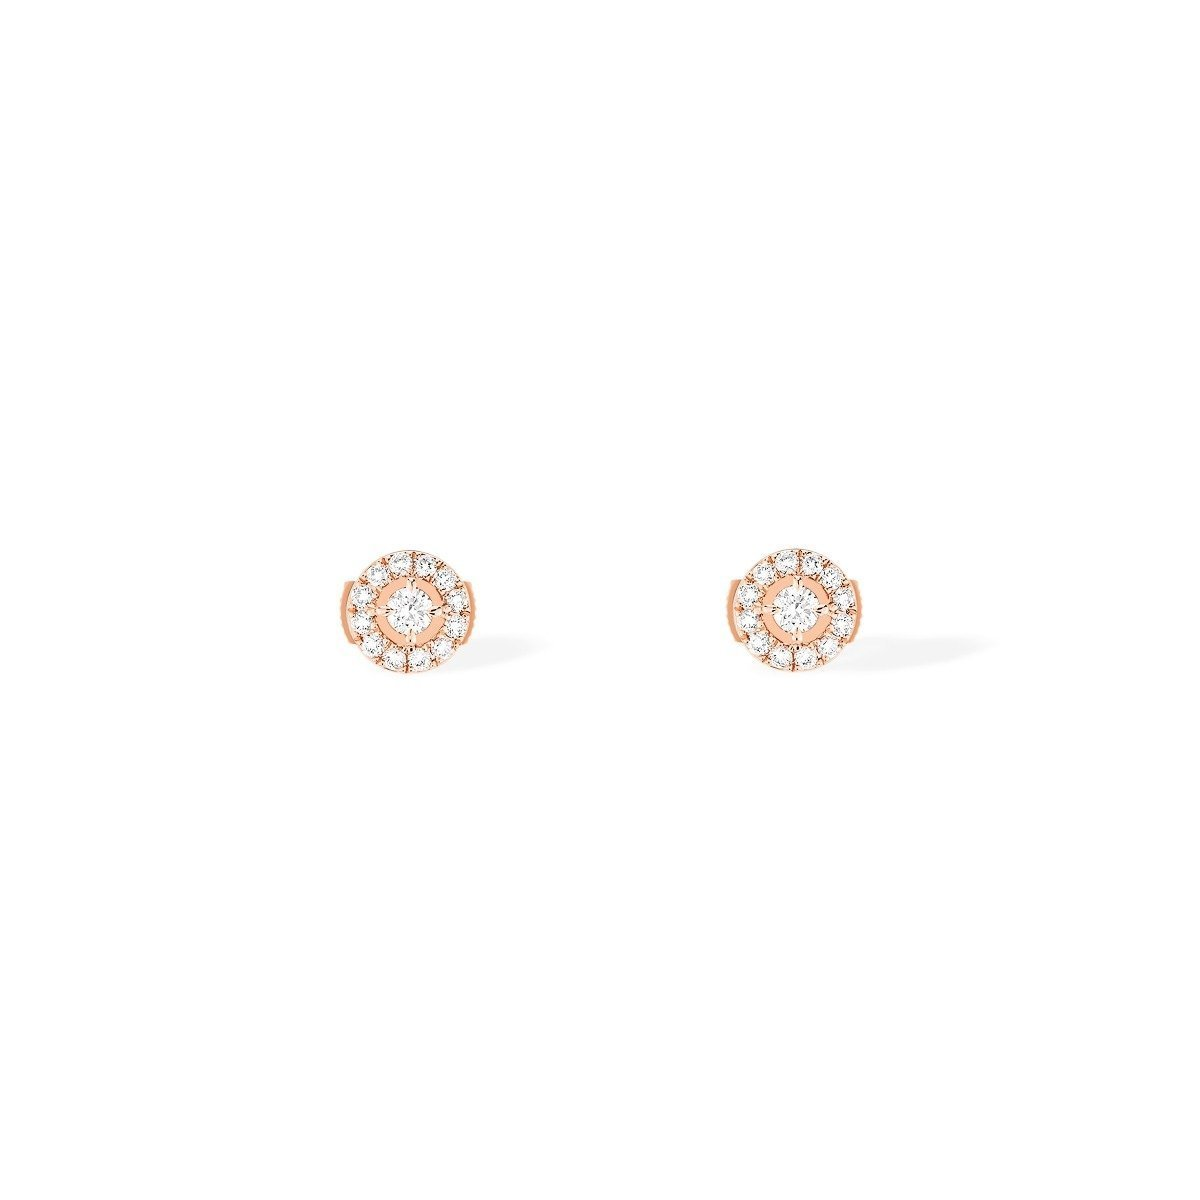 Boucles d'oreilles Messika Joy Diamants Ronds PM en or rose et diamants vue 1